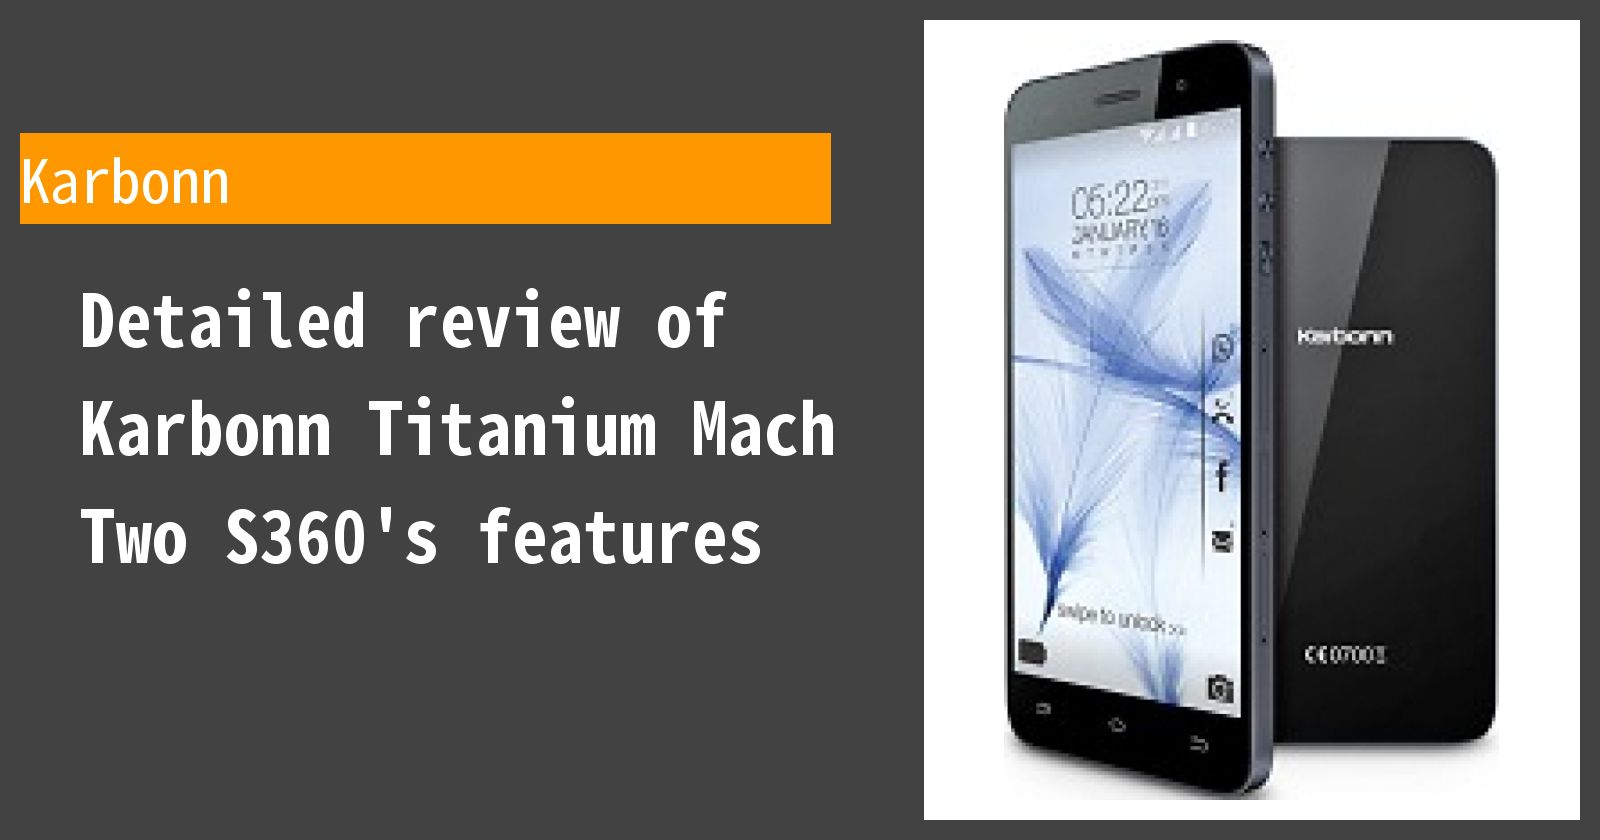 Detailed review of Karbonn Titanium Mach Two S360's features